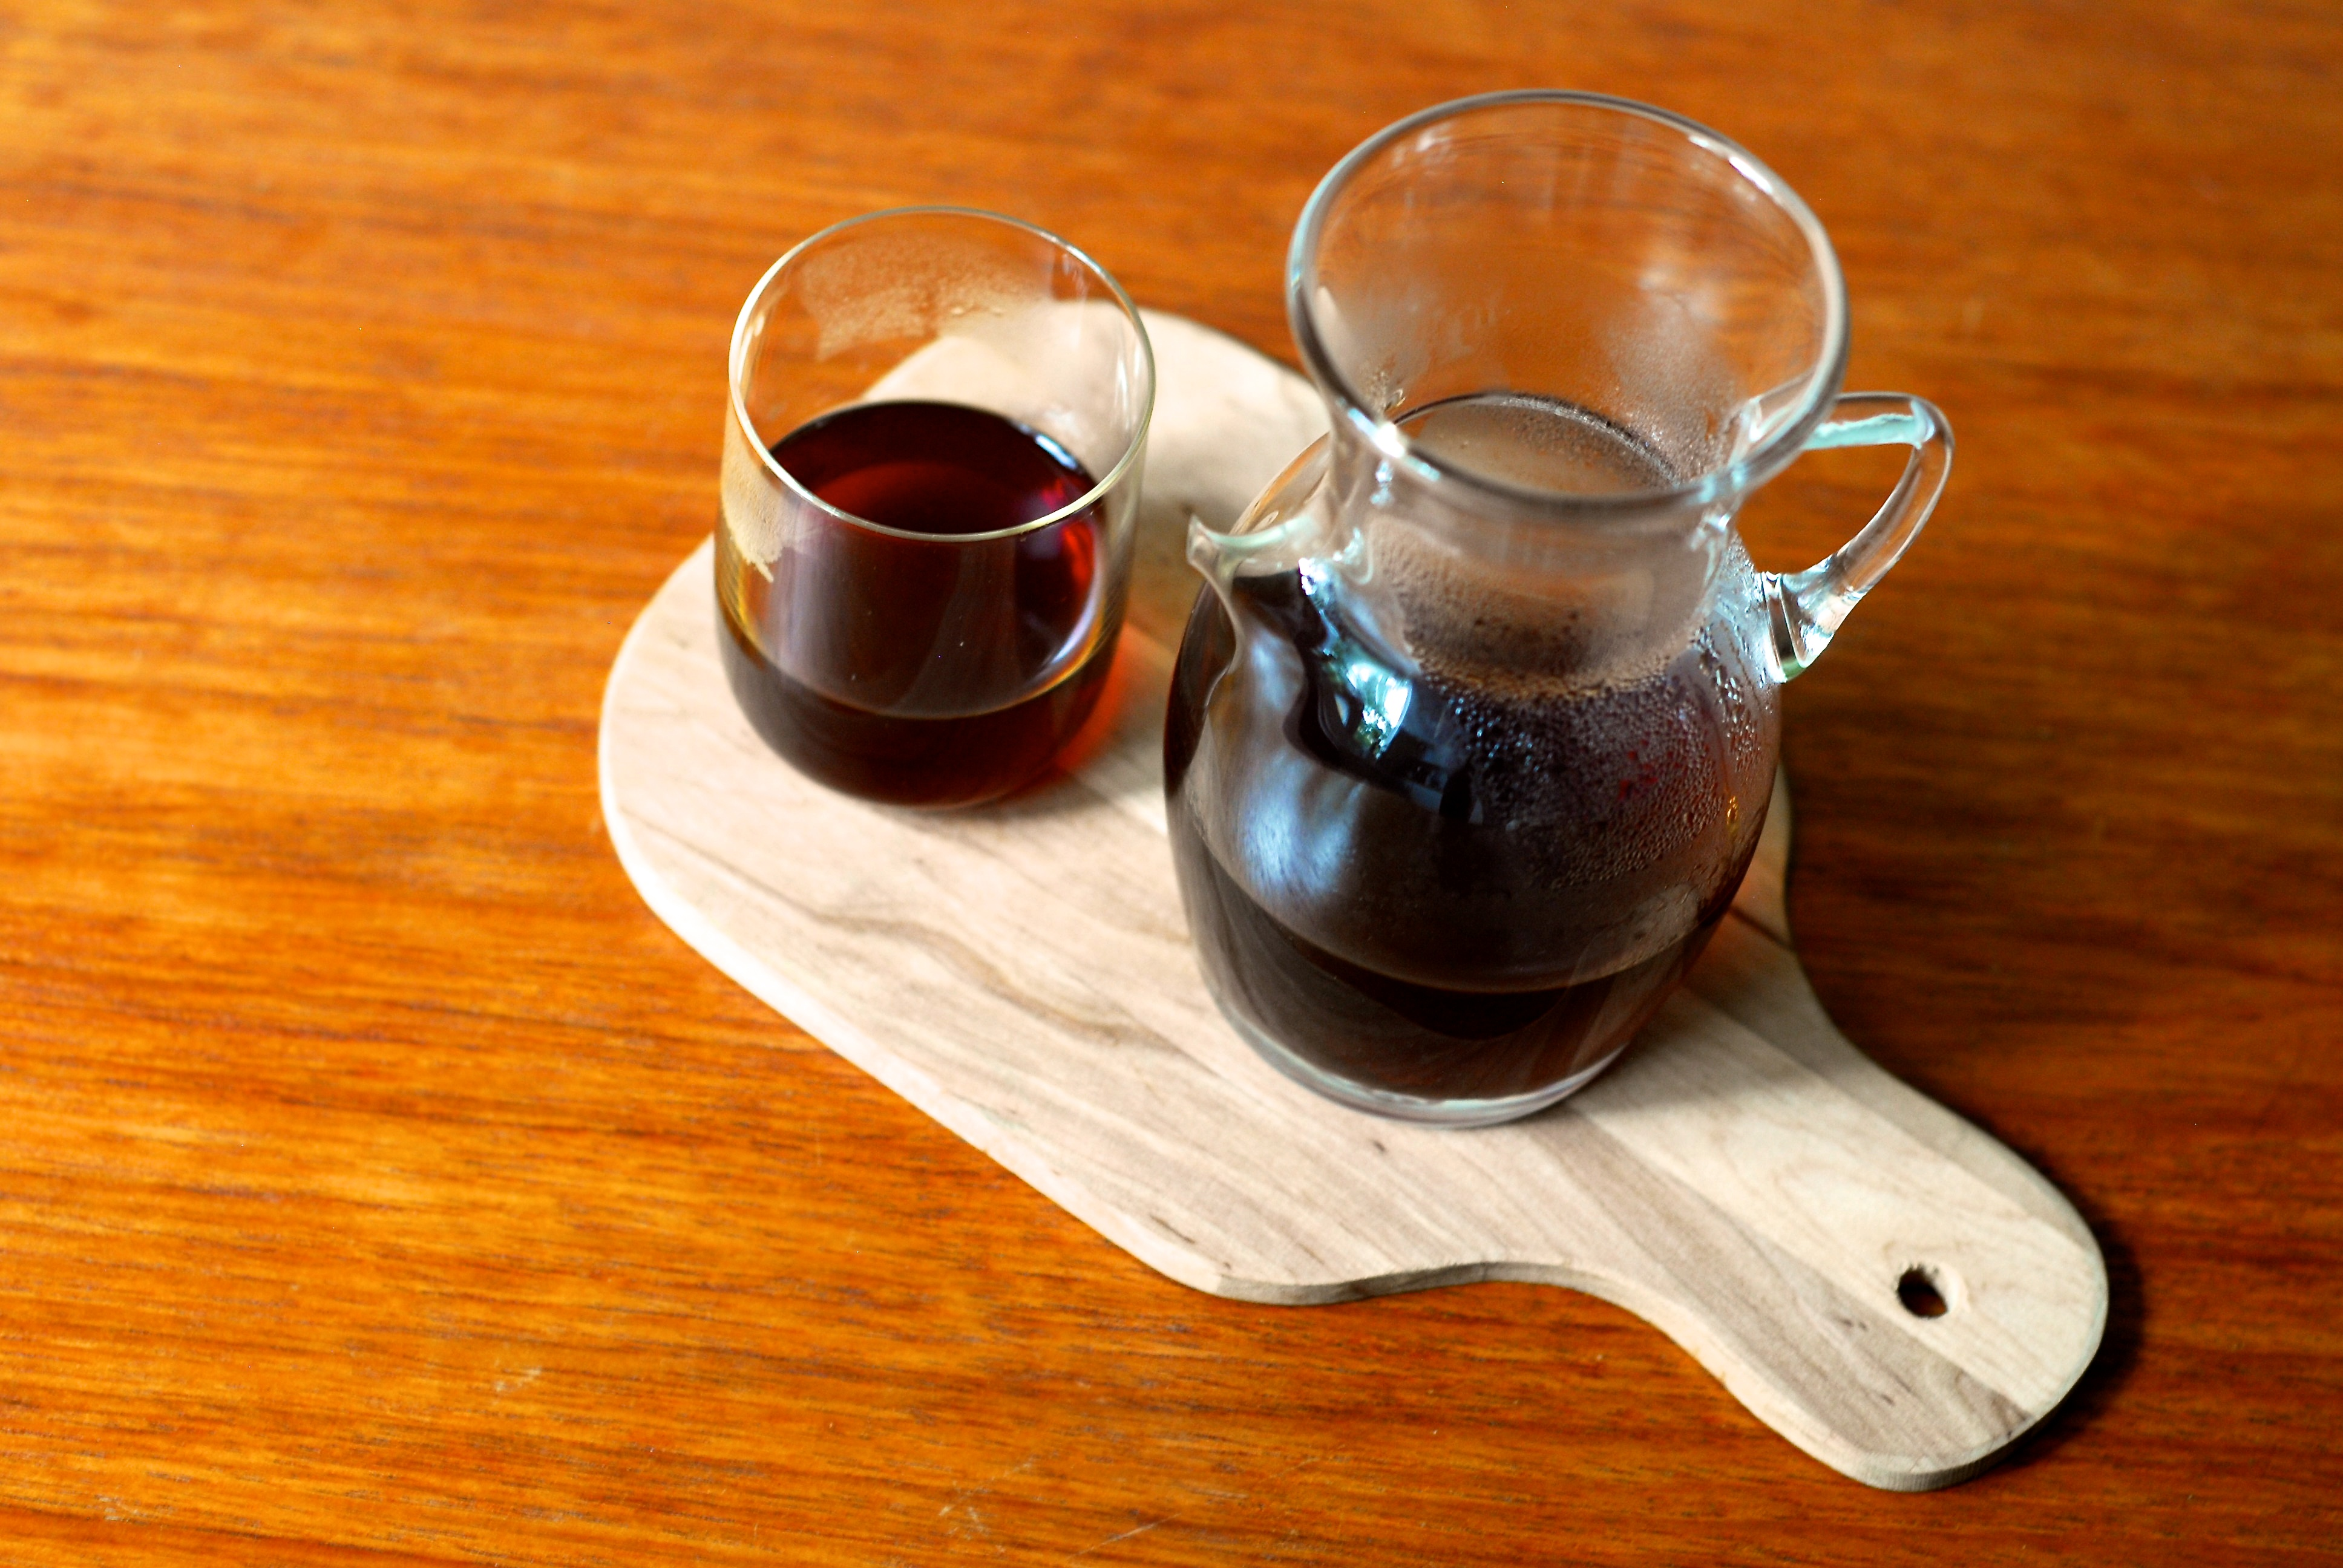 WeBrew With Beautiful Things – Dear Coffee, I Love You.